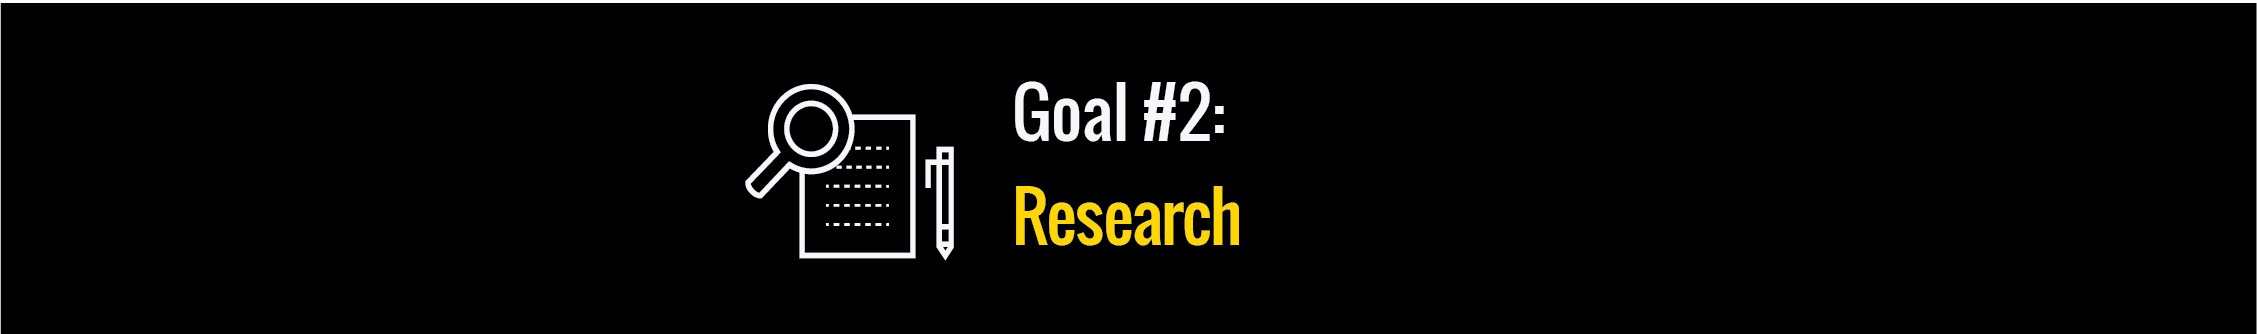 Goal #2: Research